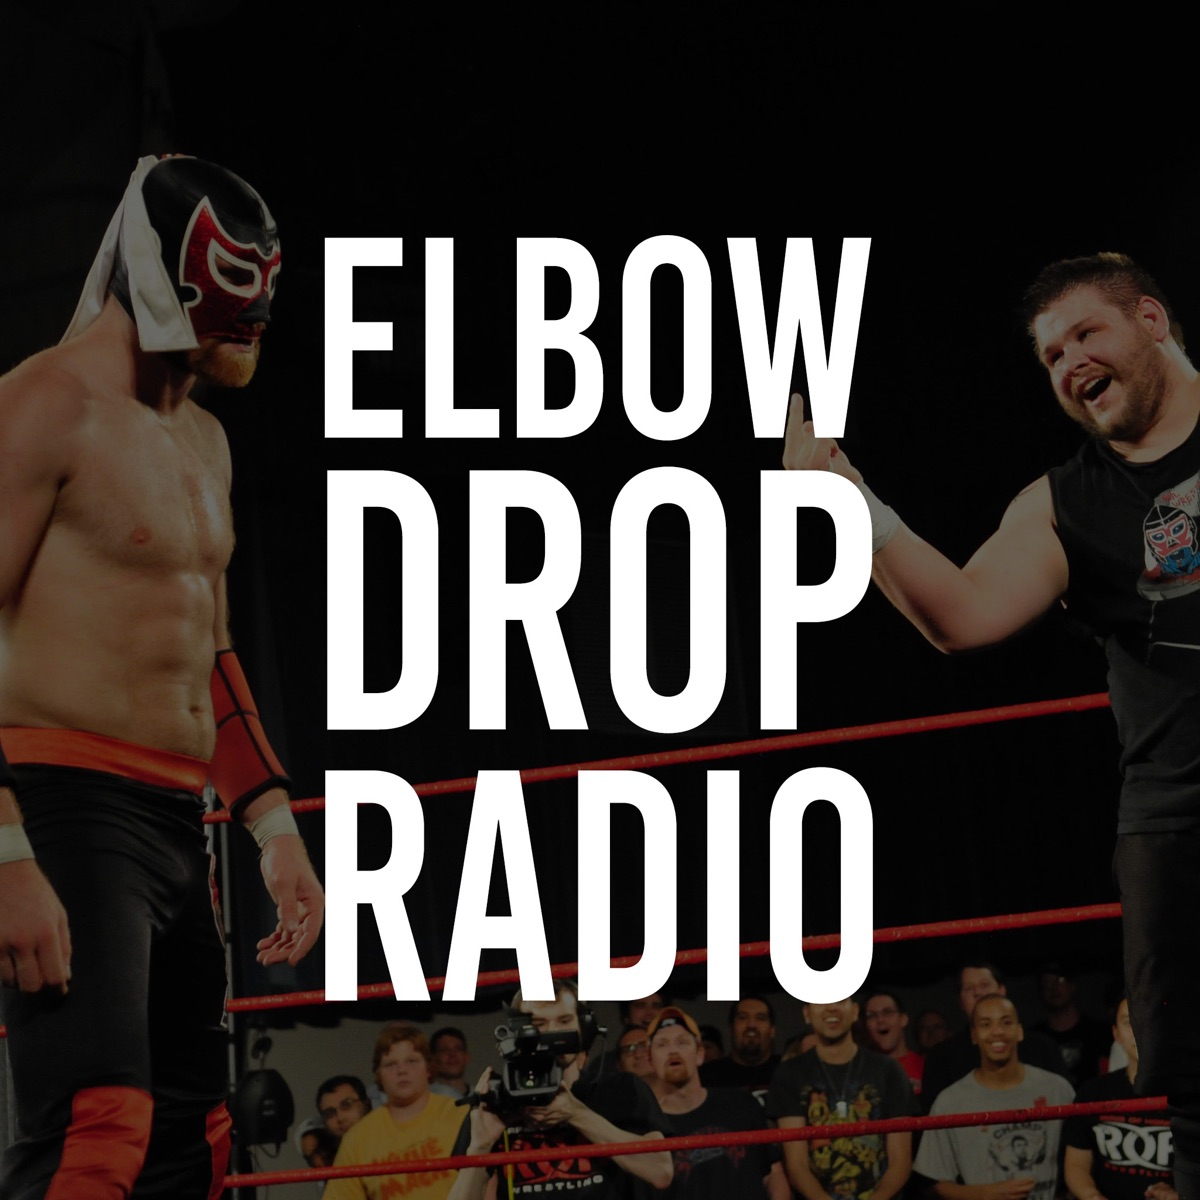 Elbow Drop Radio